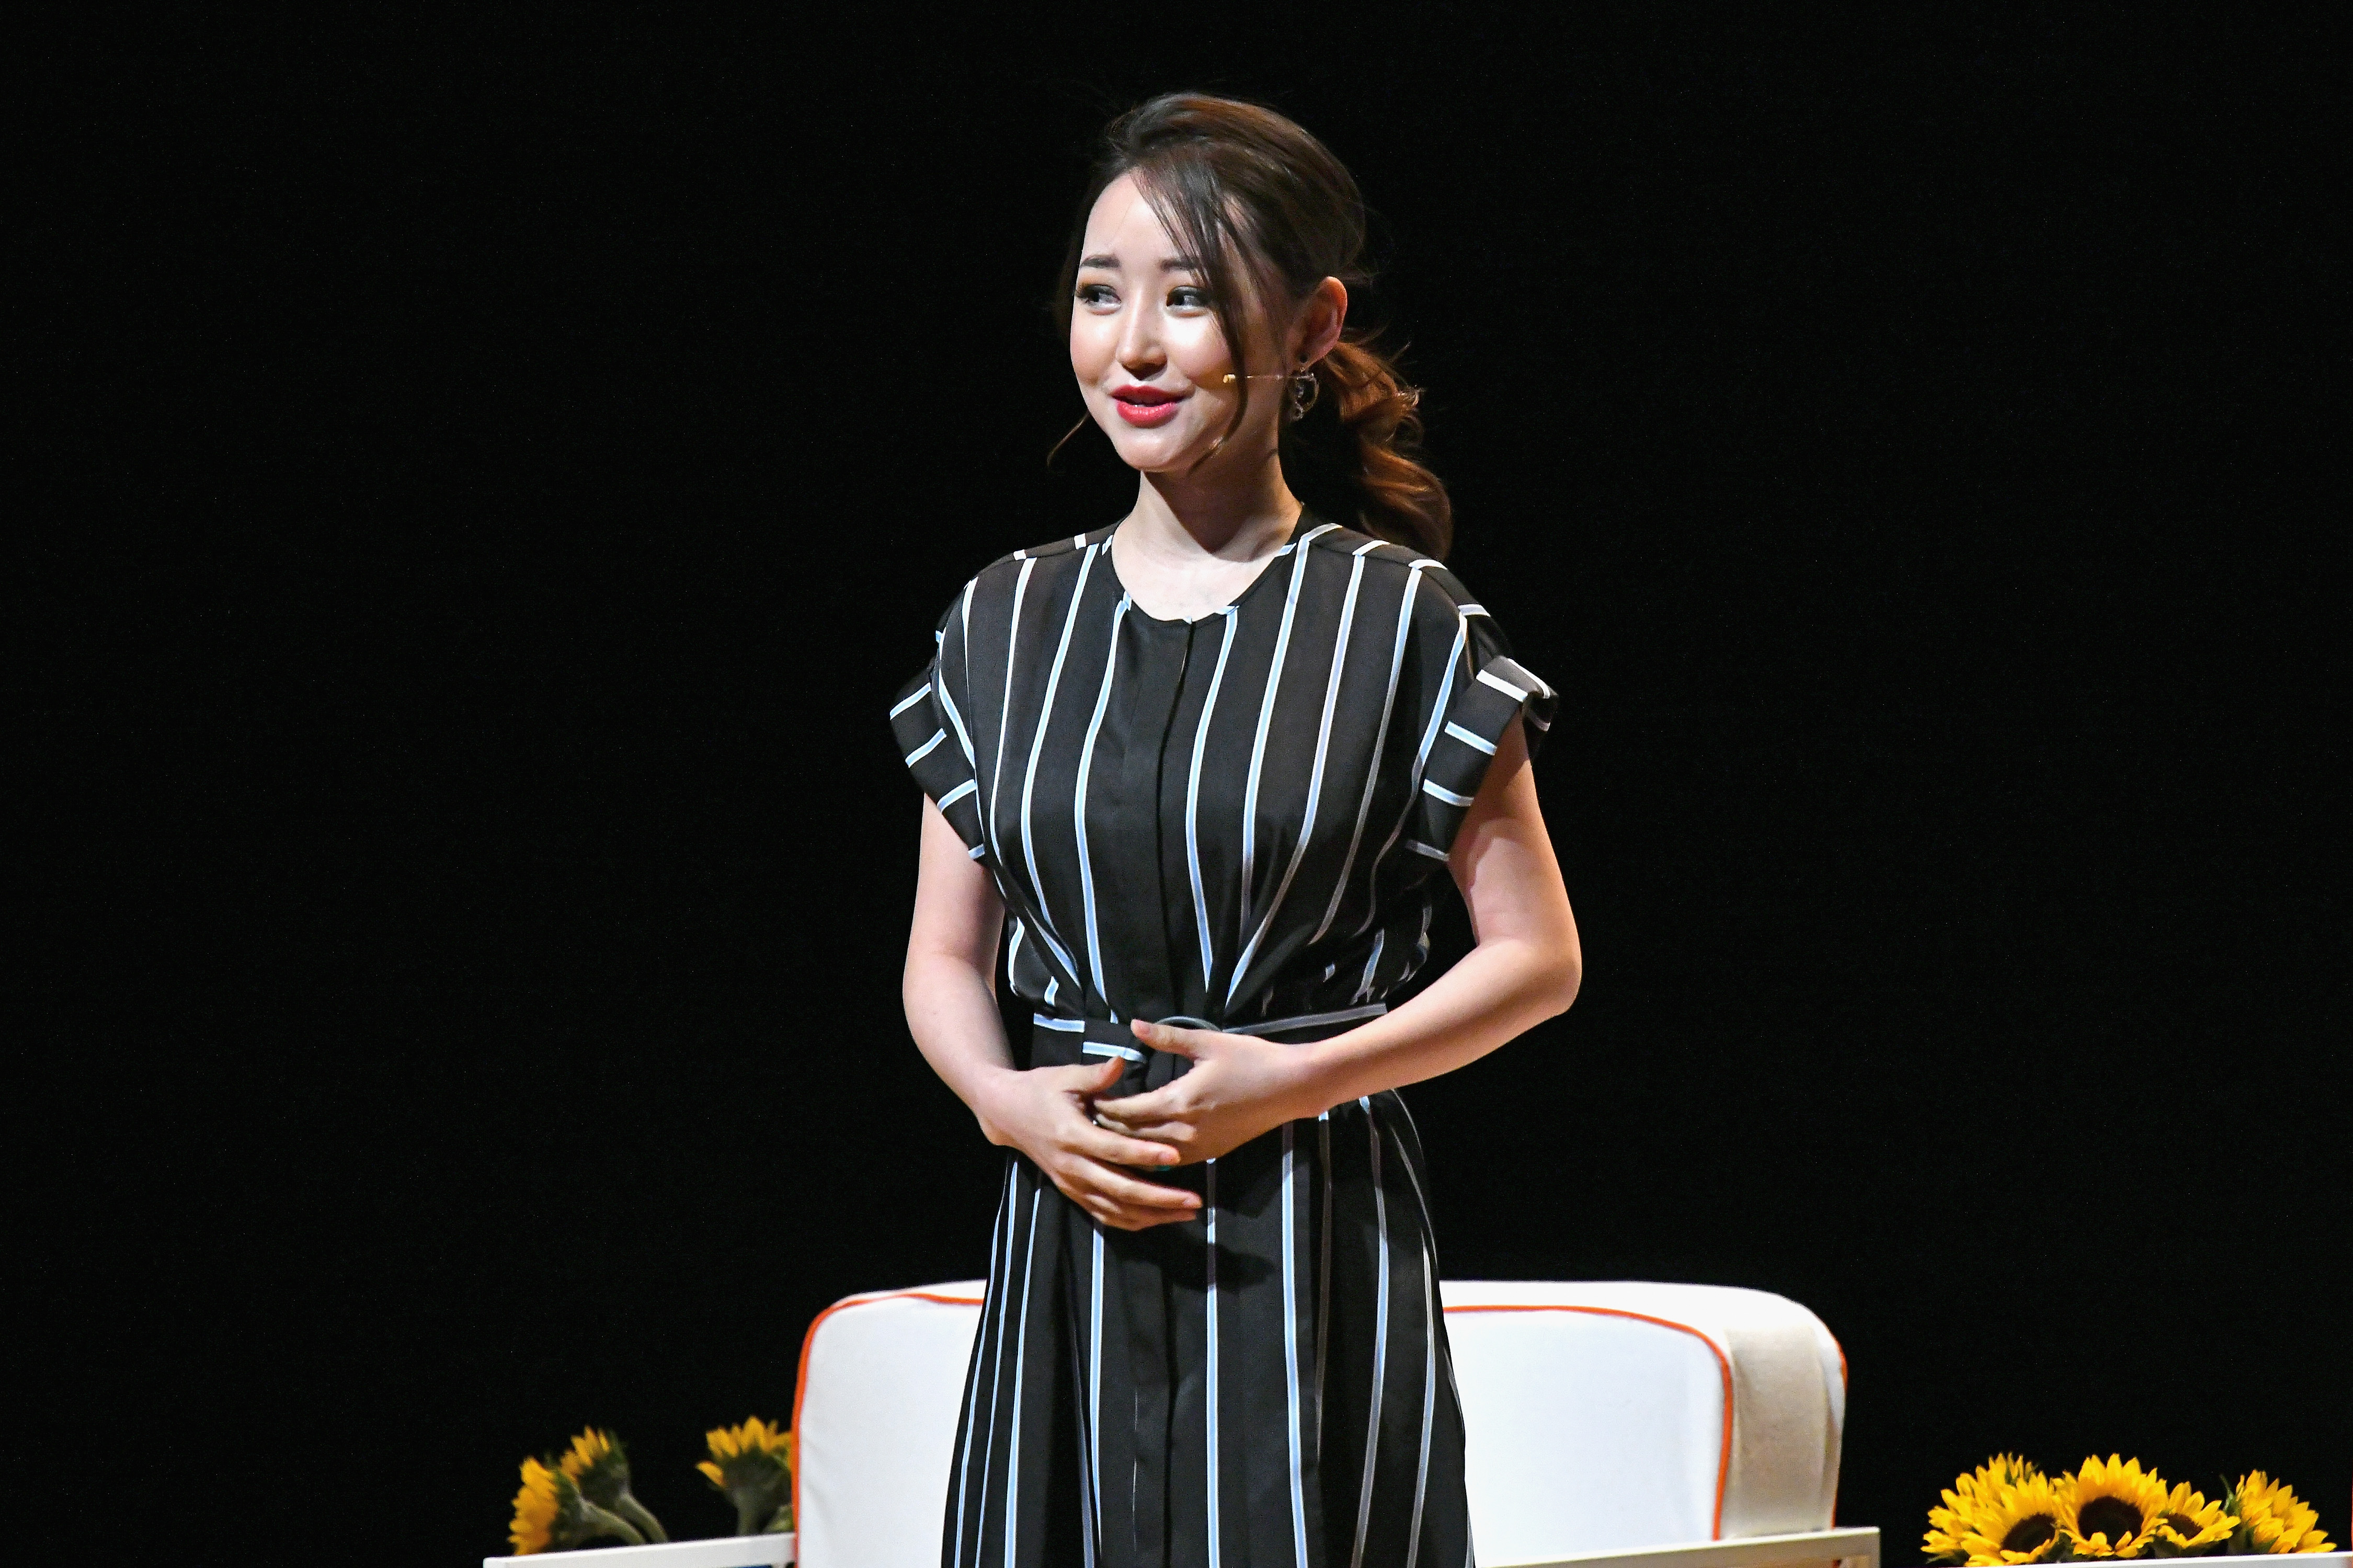 Activist Yeonmi Park speaks onstage during The Tory Burch Foundation 2018 Embrace Ambition Summit at Alice Tully Hall on April 24, 2018 in New York City.